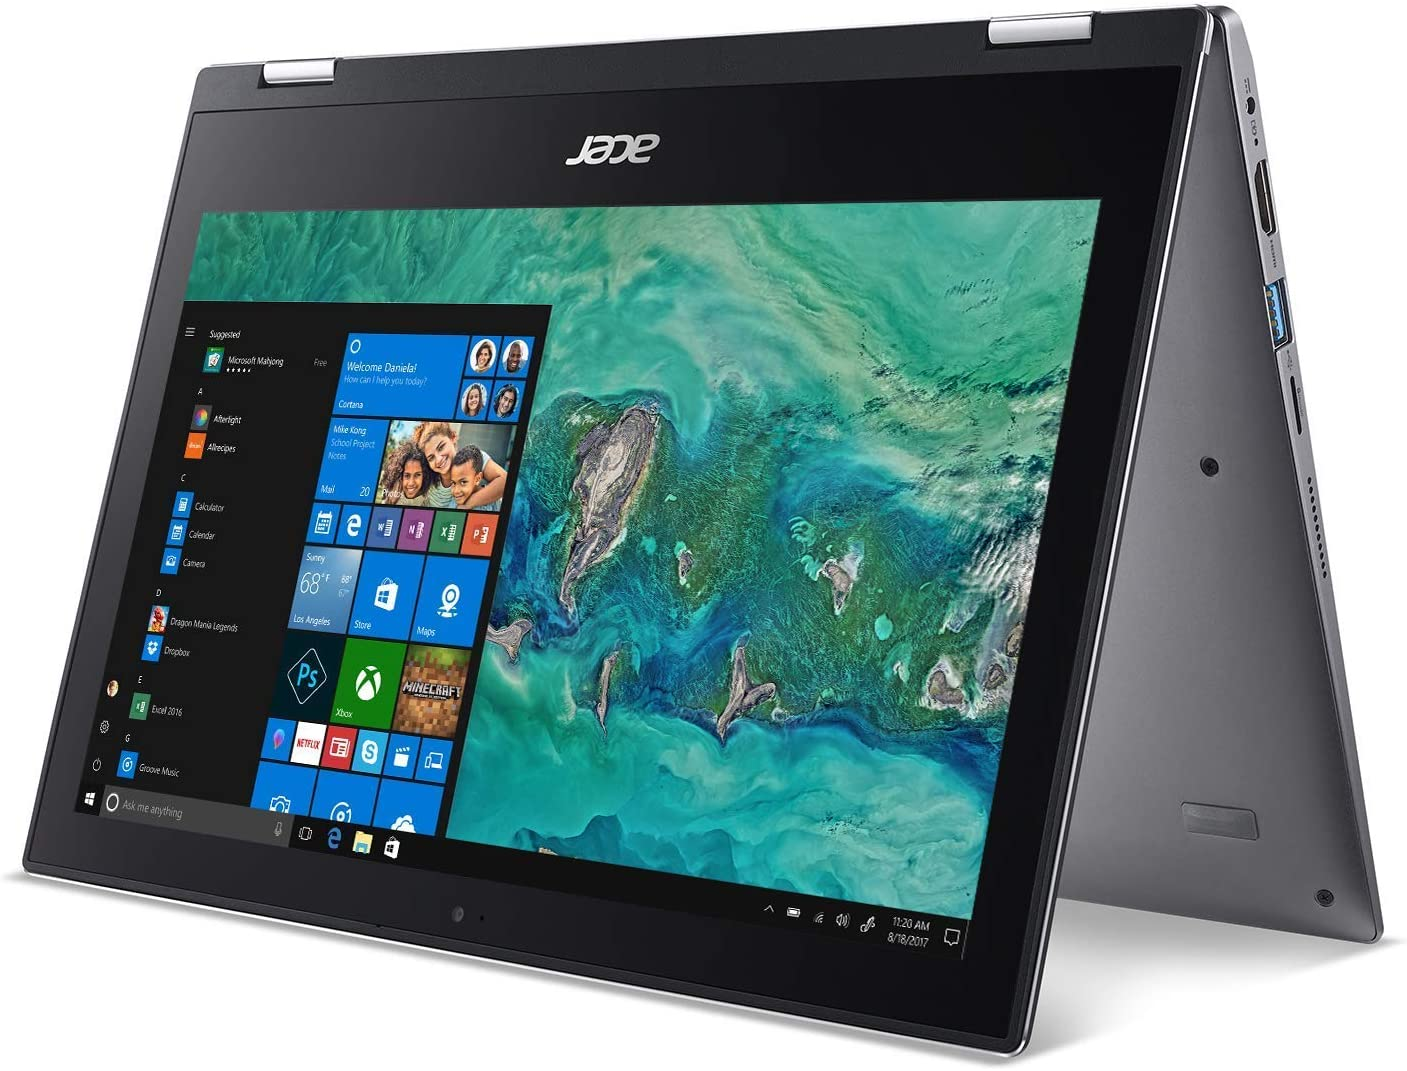 Newest Acer Convertible 2-in-1 UltraBook-11.6in Touchscreen, Intel Celeron Dual-Core N4000 Processor, 4GB Ram 64GB SSD, HDMI, Win10 Home S(Renewed)